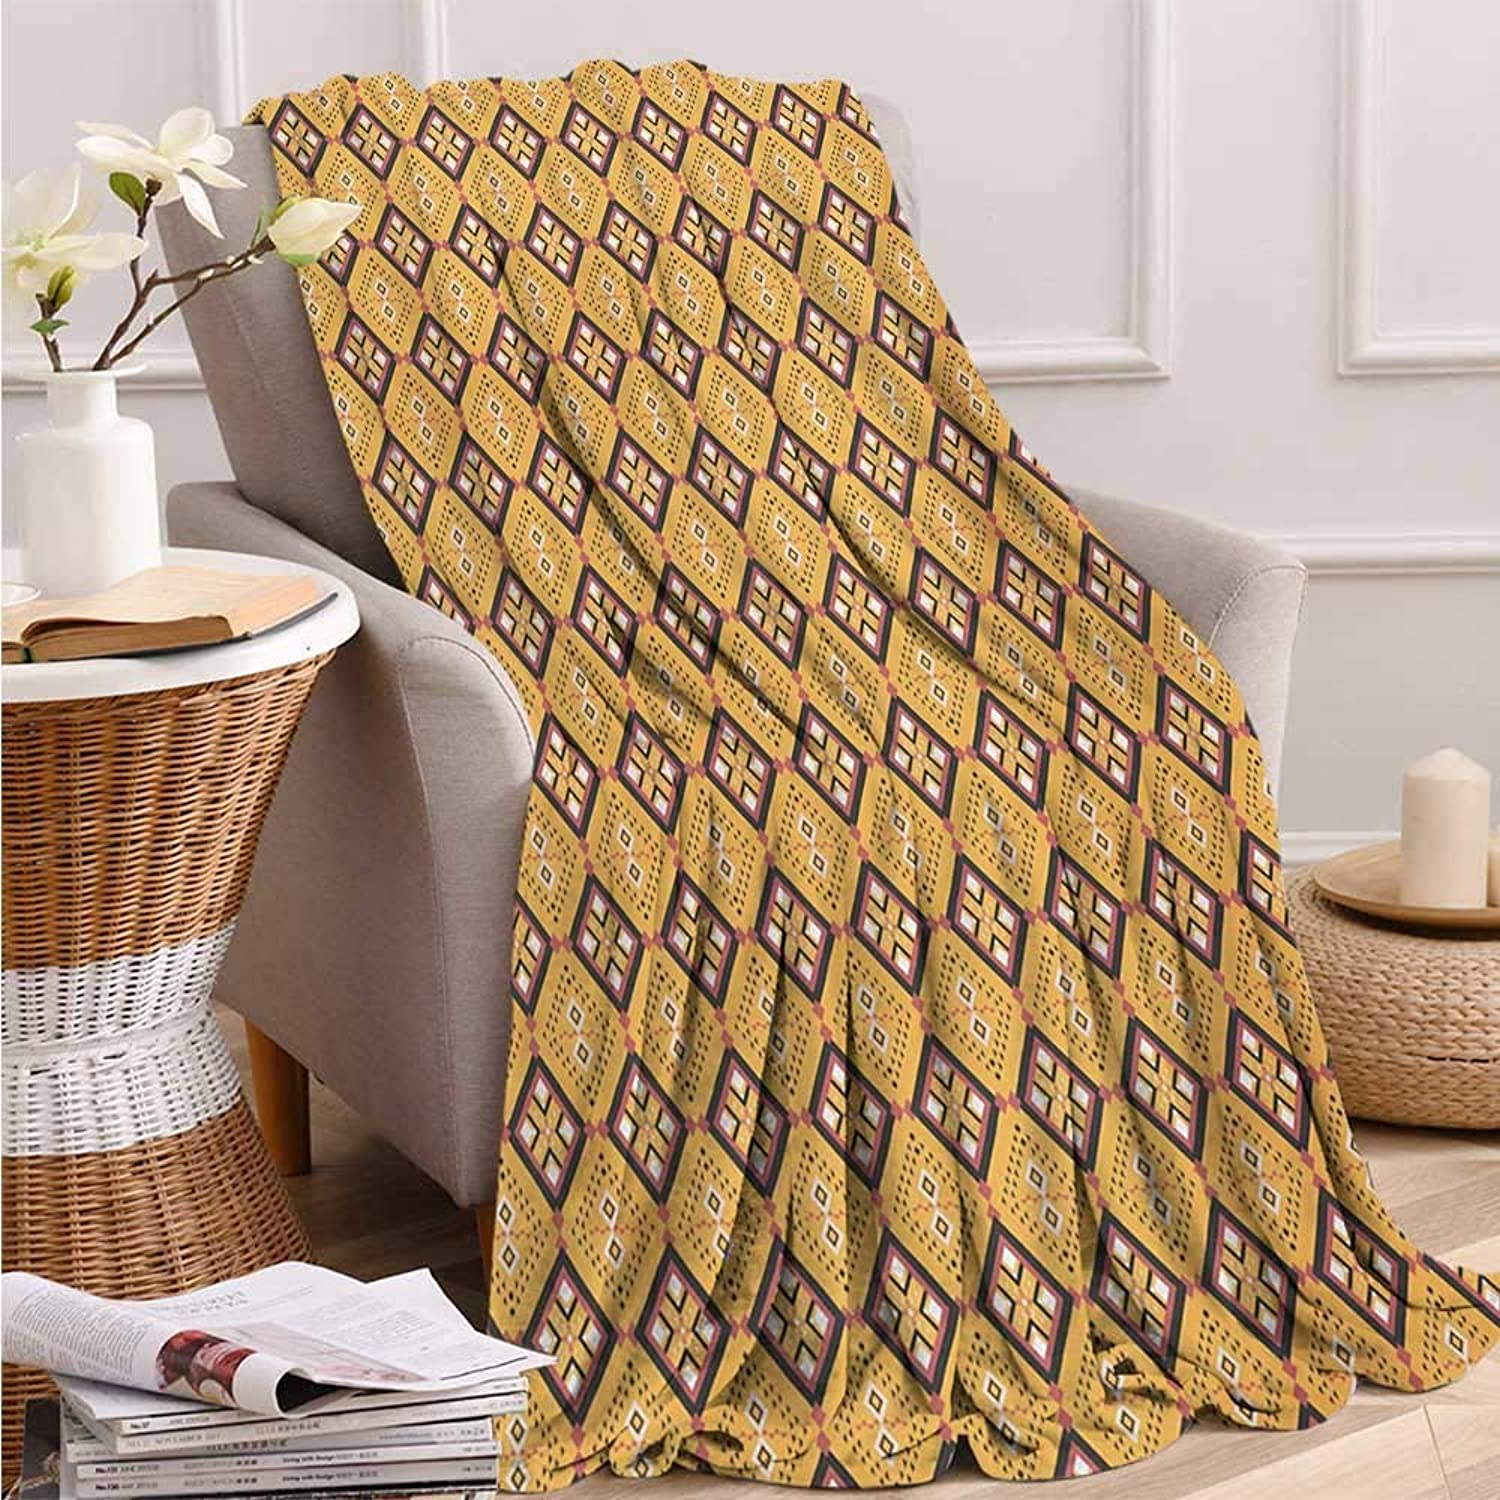 Fenlin African, Throw Blanket for Girls, Tribal Tile Pattern with Diamond Line Motifs Ancient Cultures, Throw Blanket, 60x50 Inch Mustard Dried pink Charcoal Grey